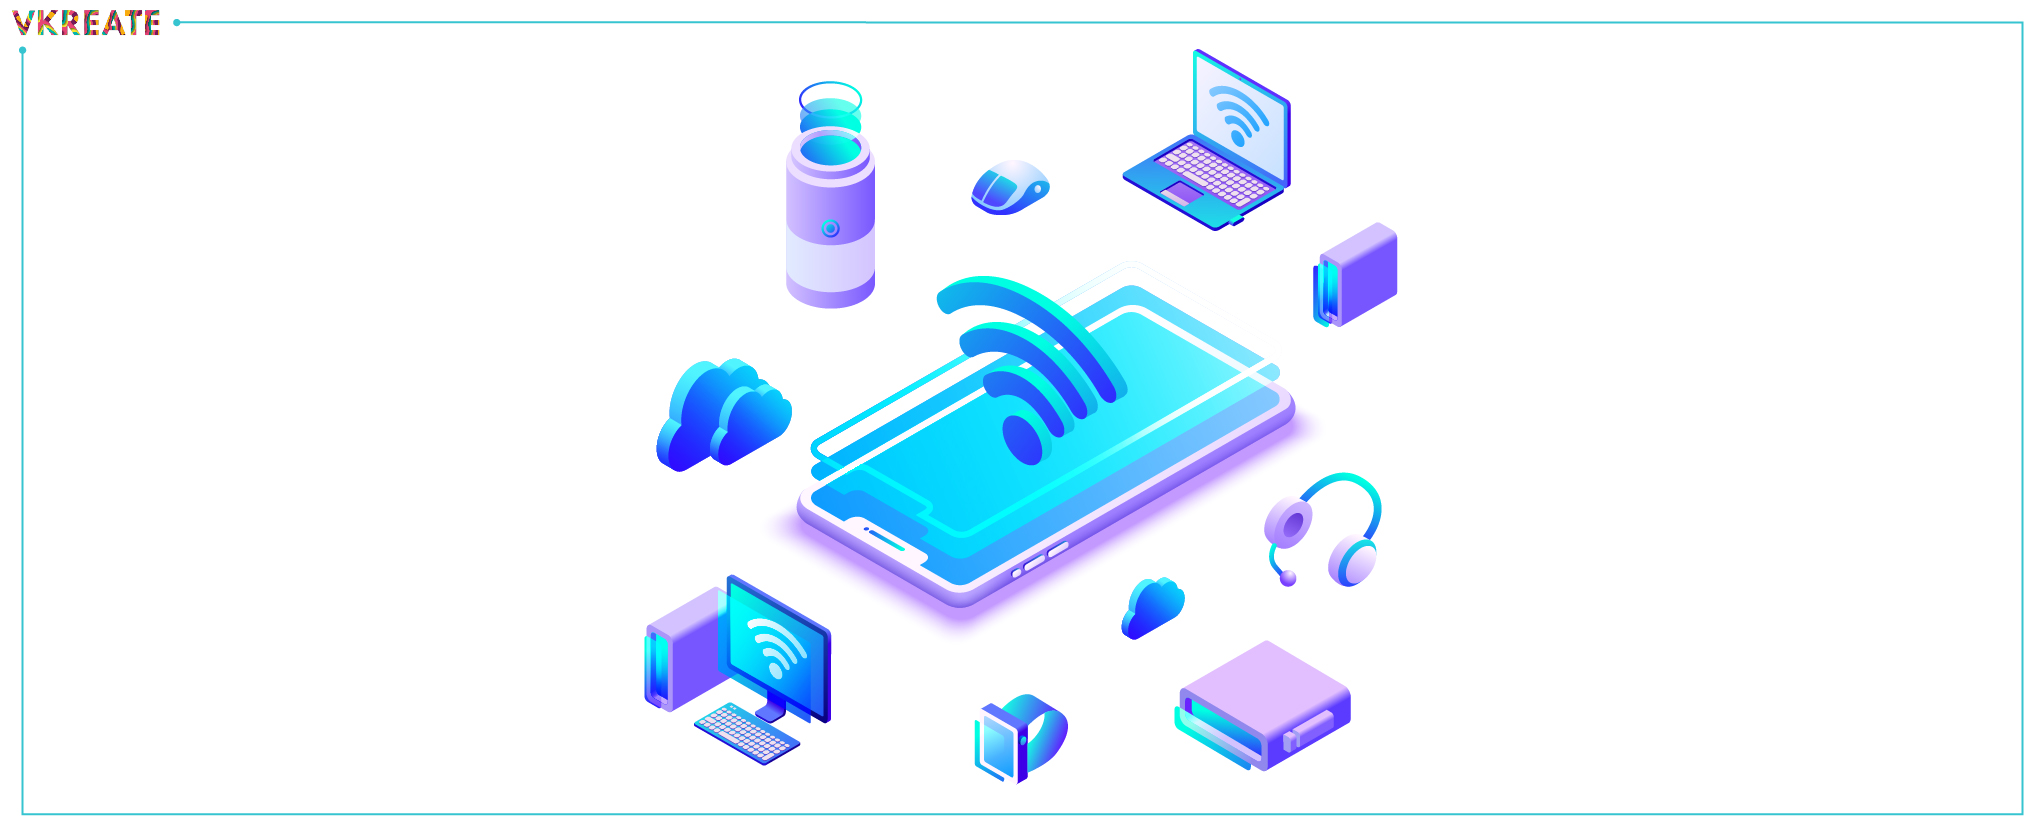 TOP 10 INTERNET of THINGS (IOT) TRENDS THAT WILL RULE 2020